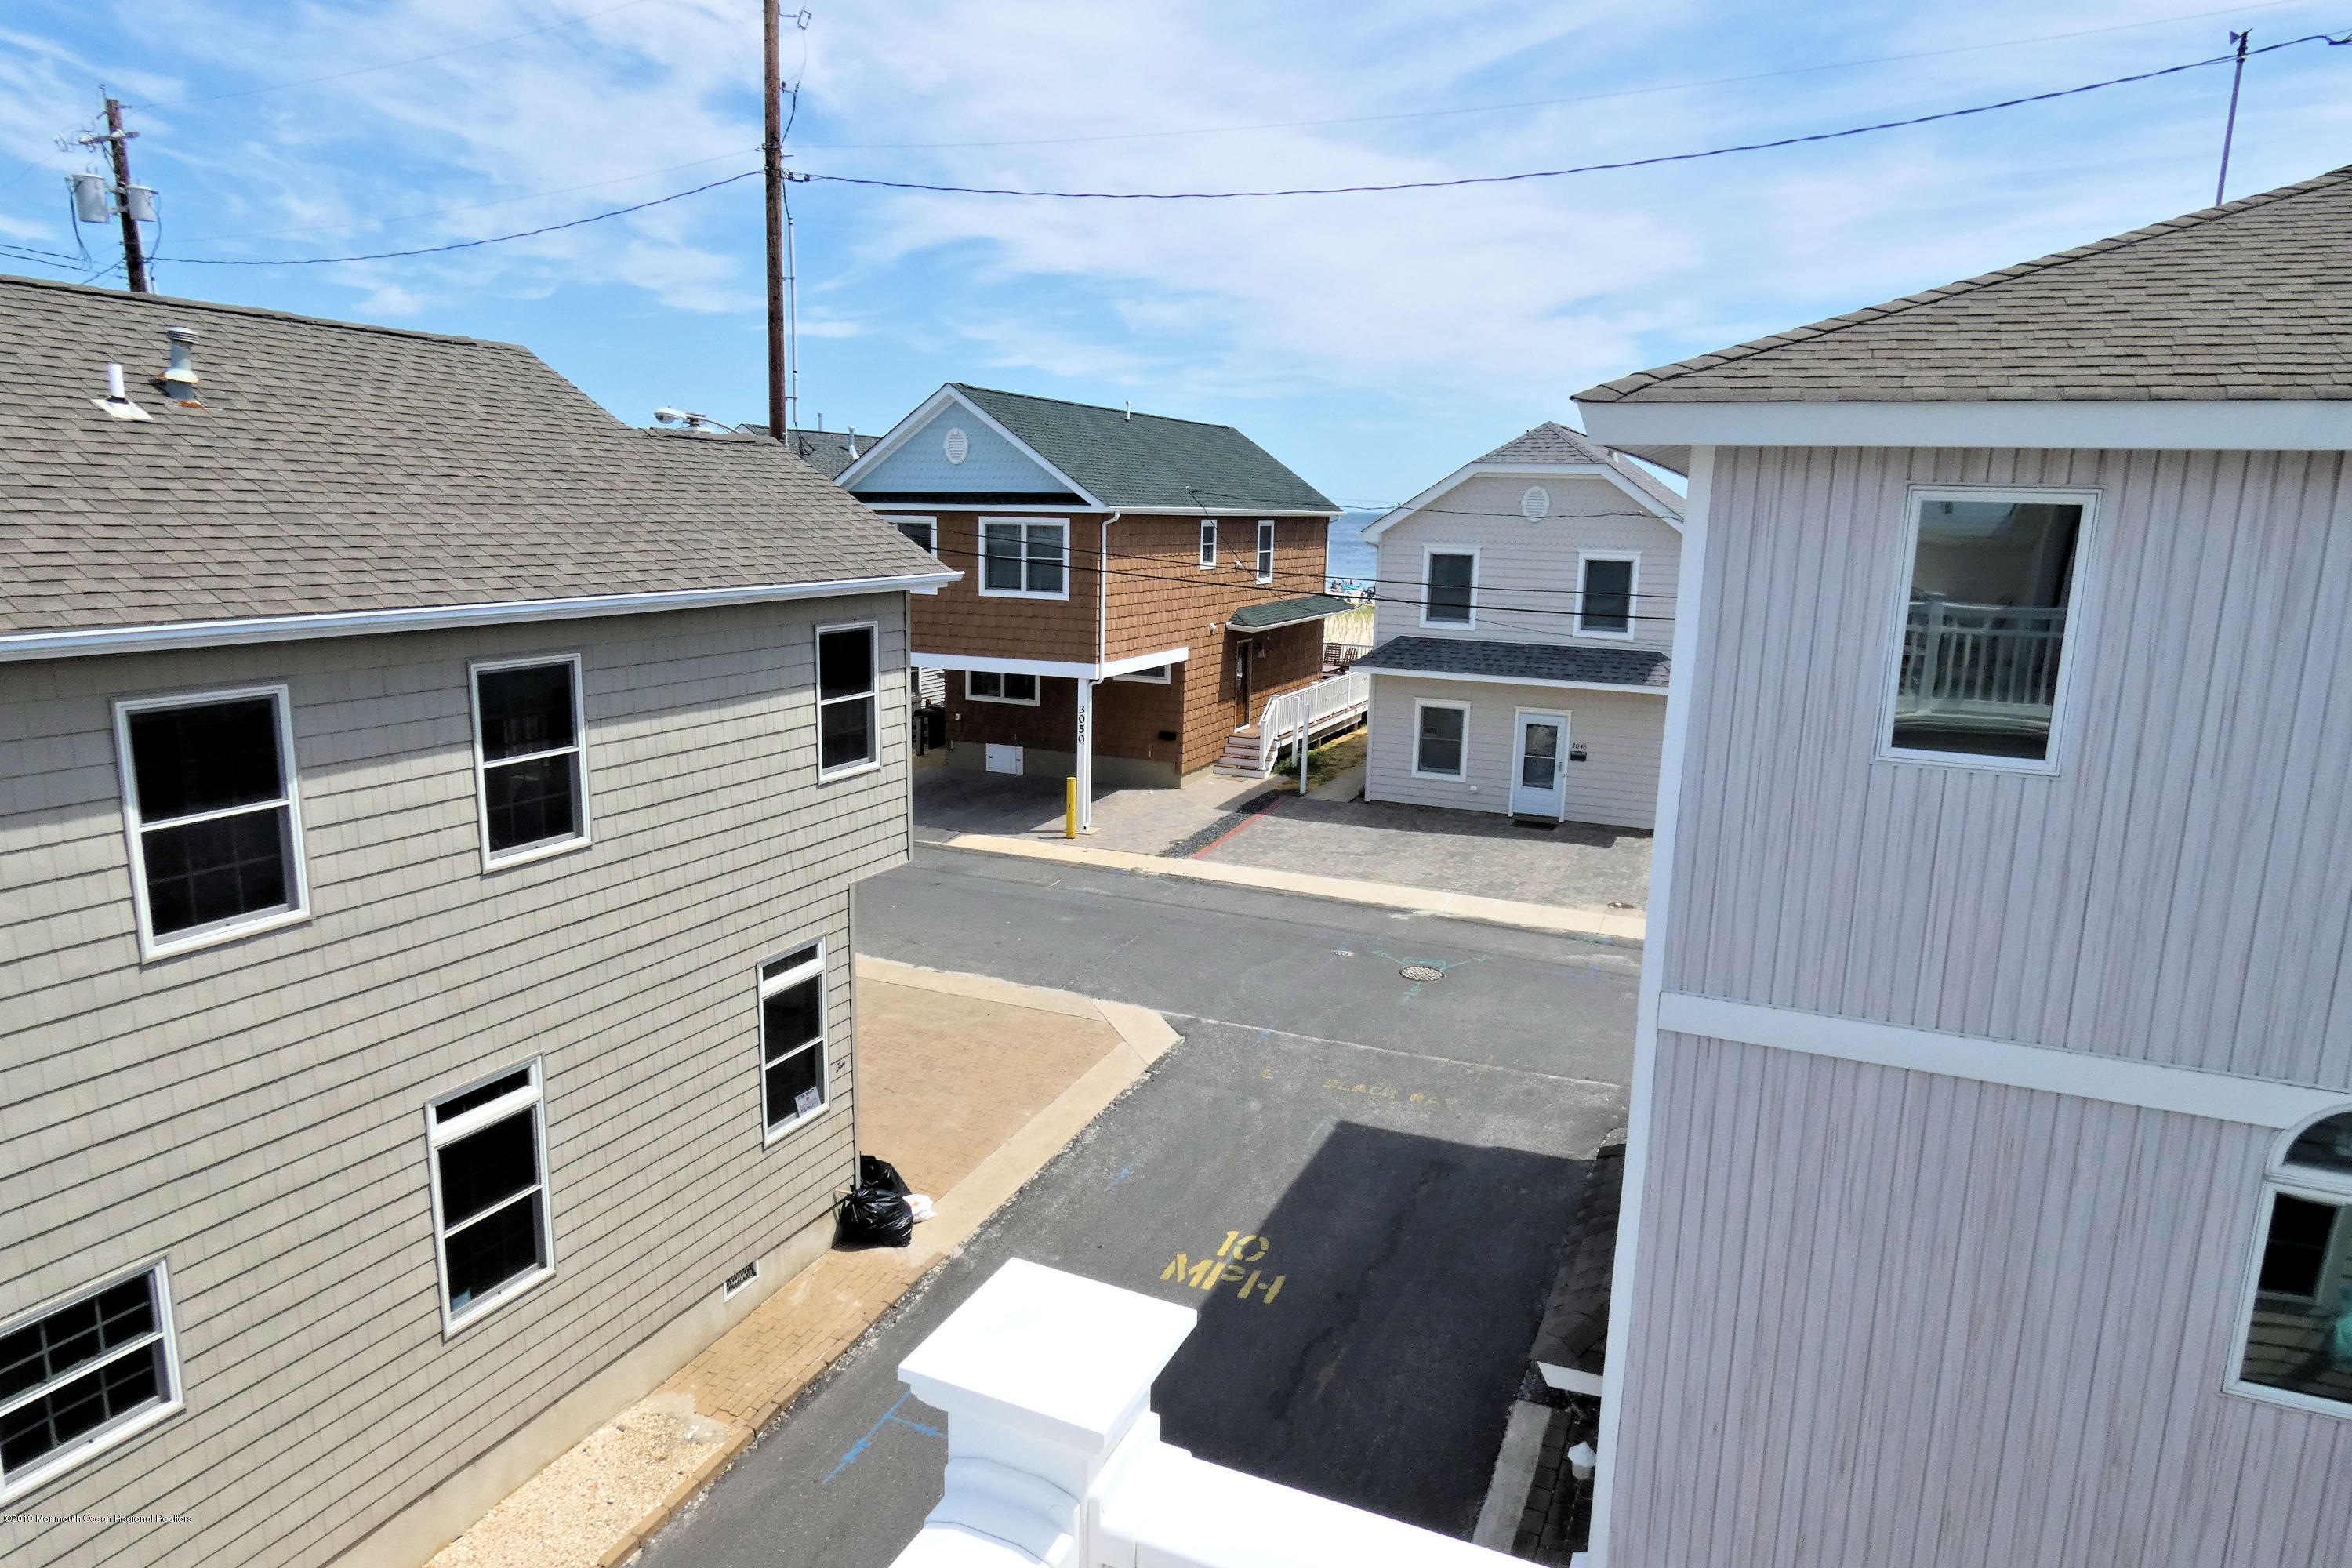 13 E Beach Way - Picture 4